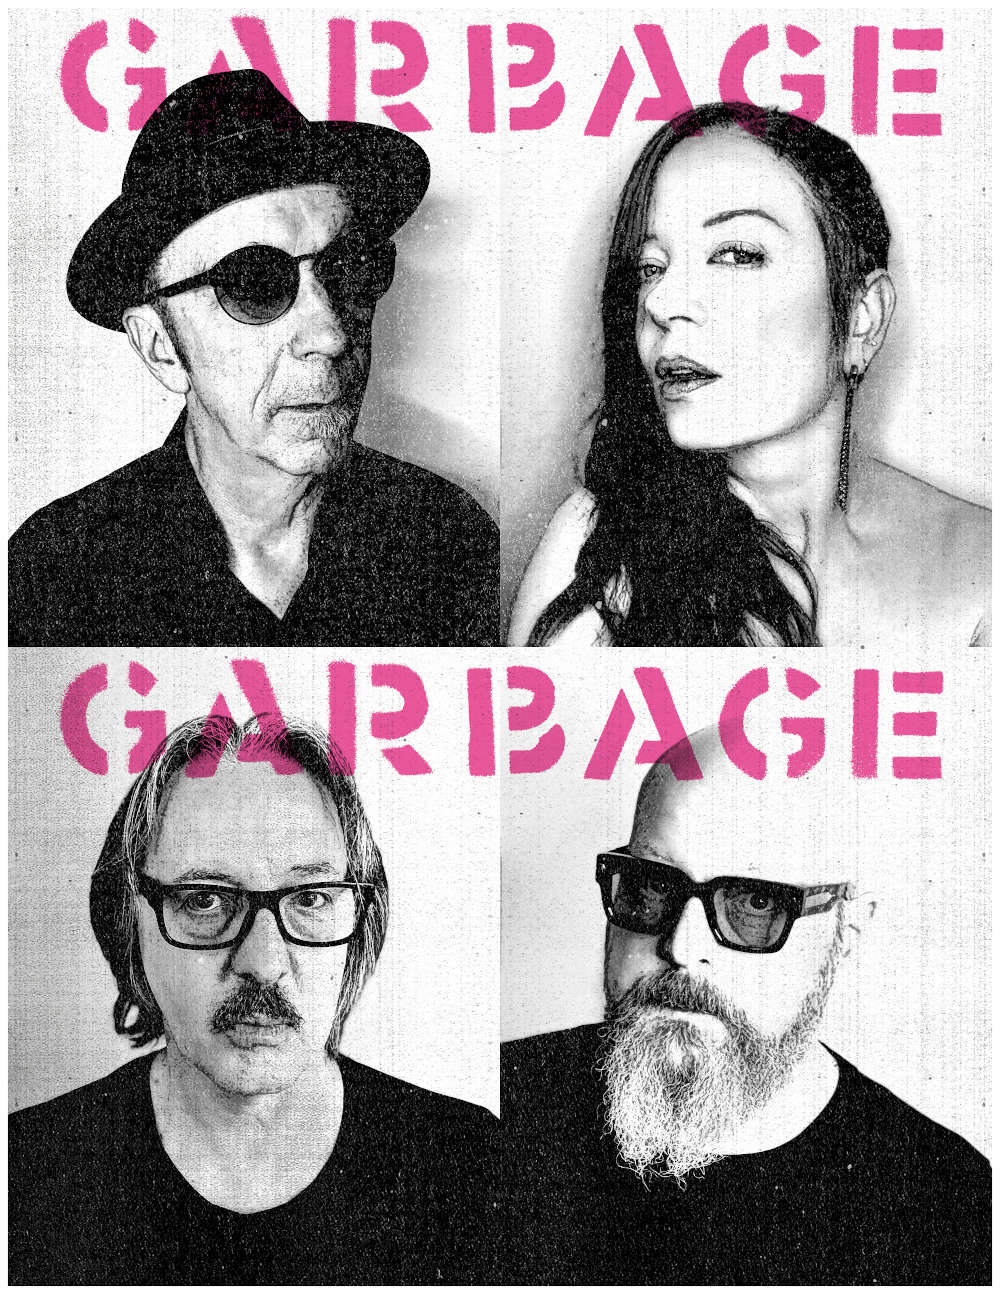 GARBAGE_No_Gods_No_Masters_pressimage_launch_Photocredit_Garbage_1000px